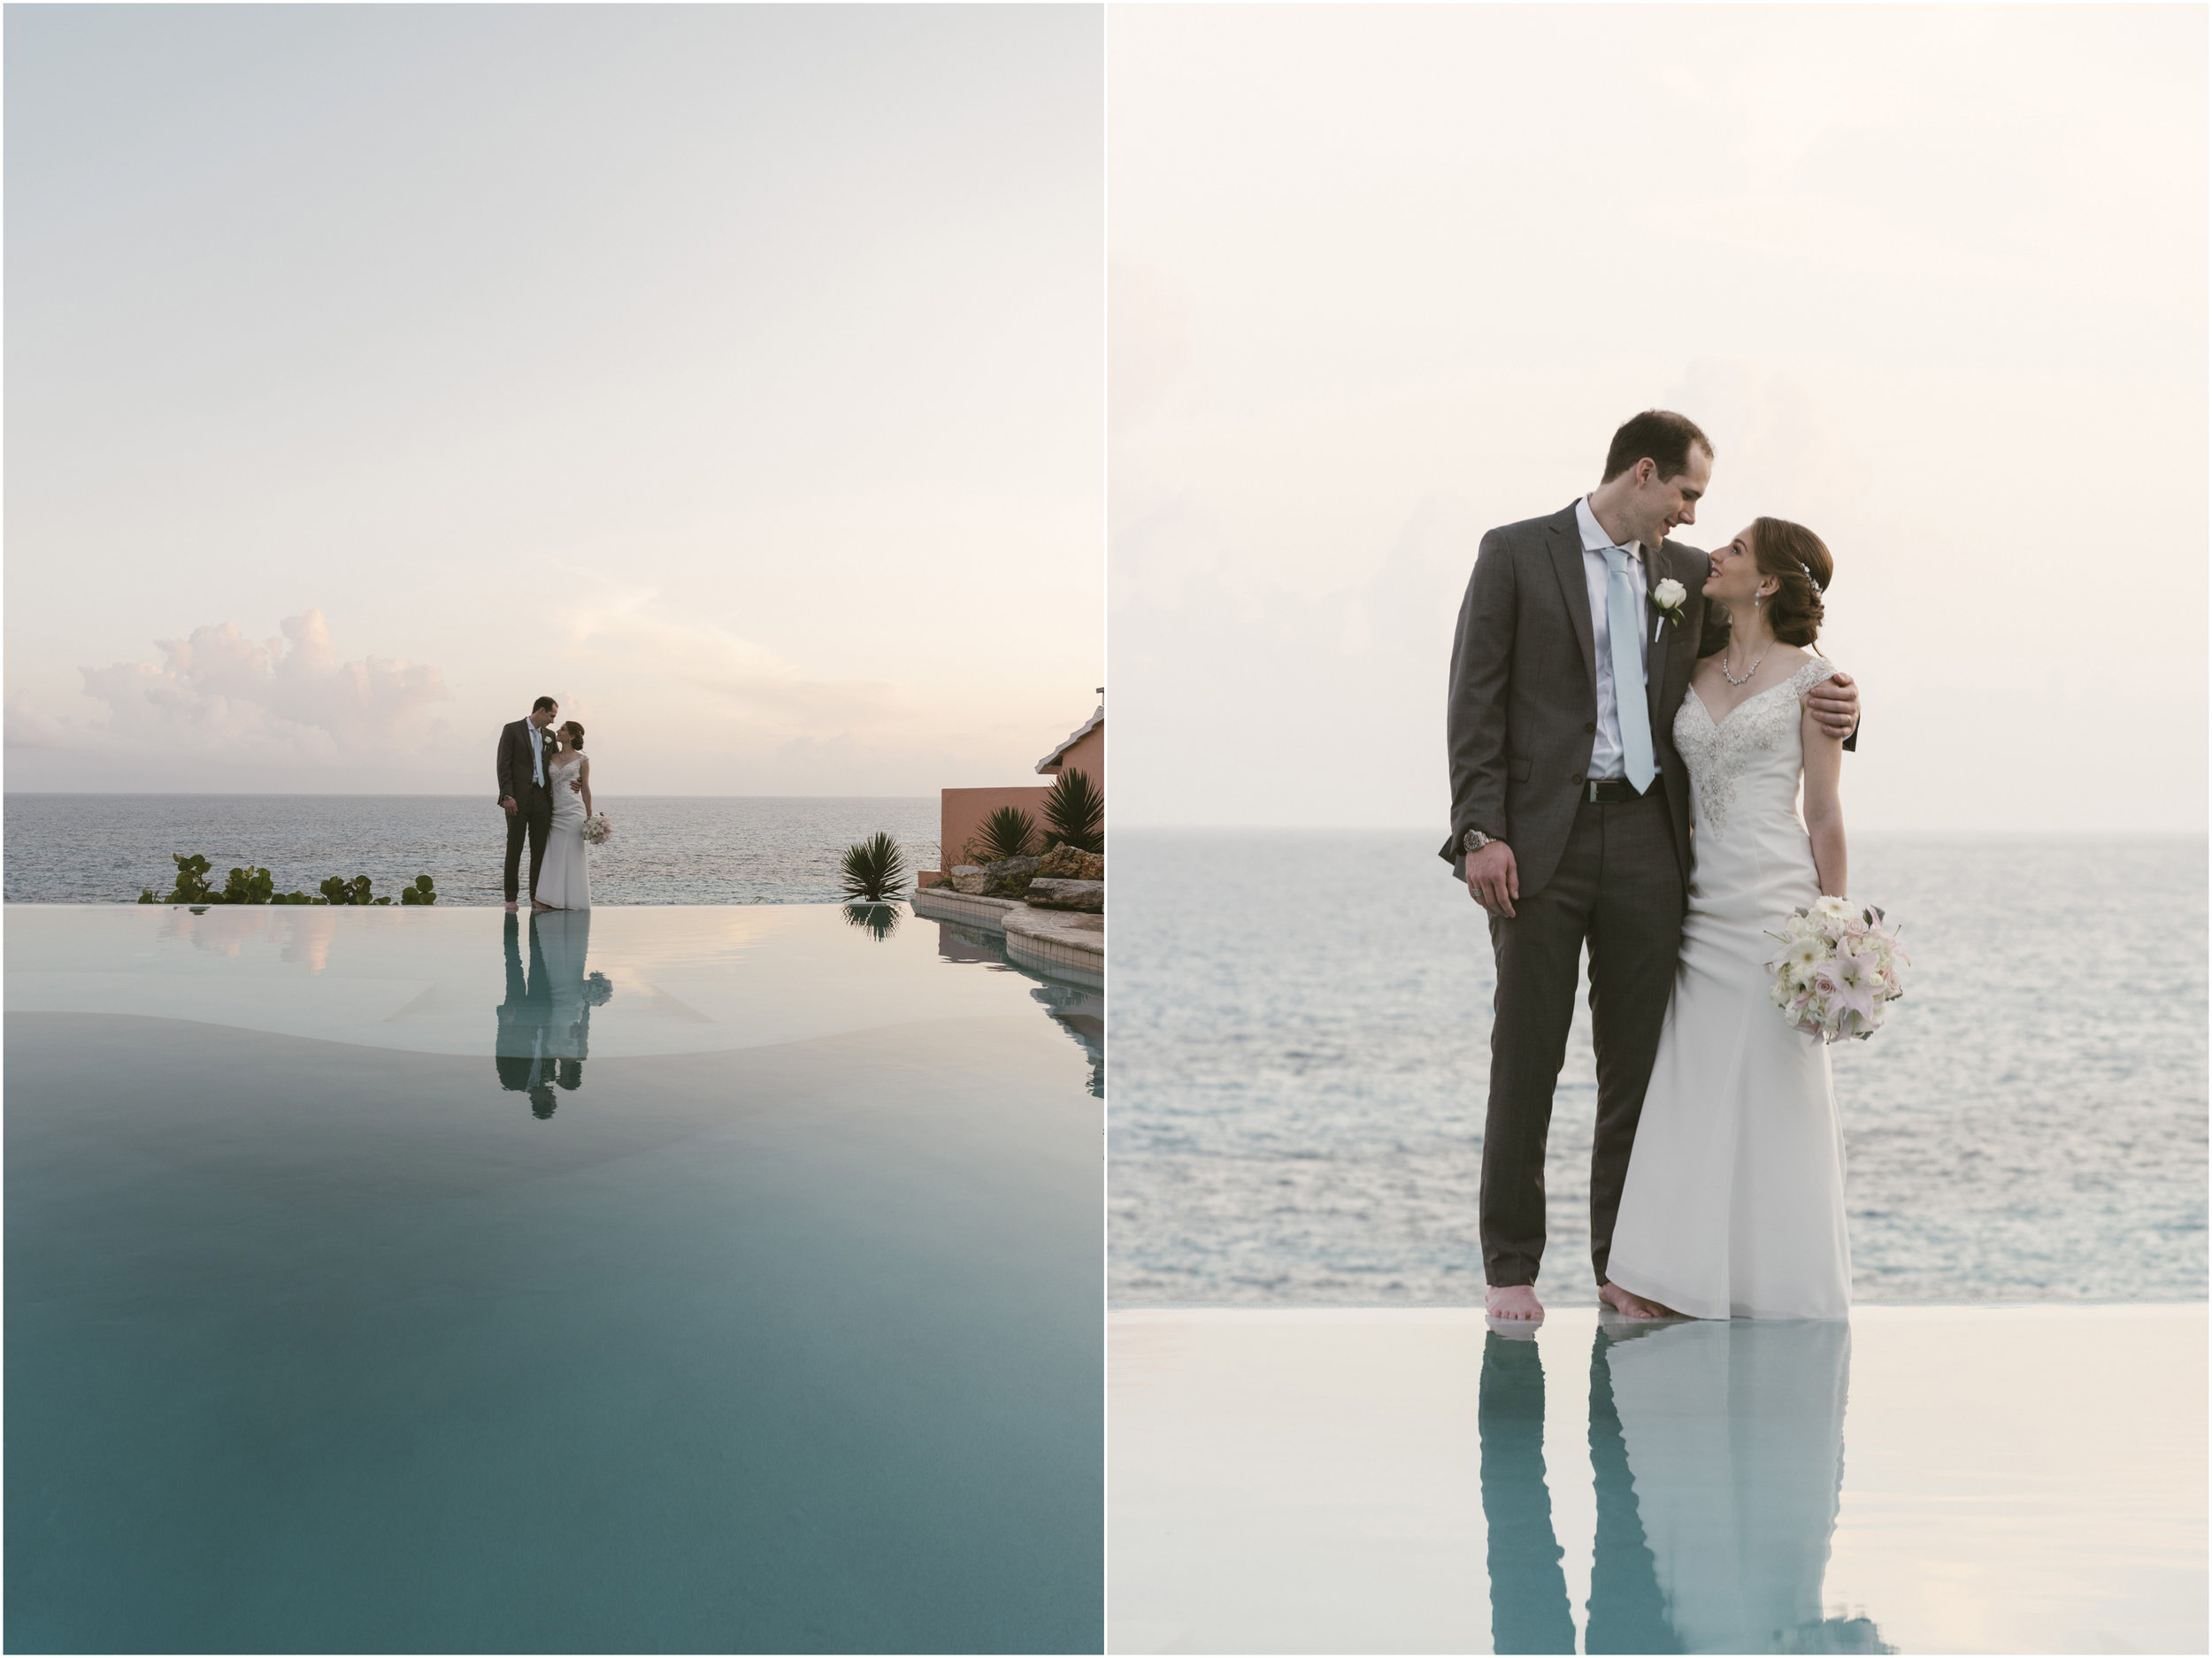 ©FianderFoto_Caribbean_Wedding_Photographer_The Reefs_Bermuda_Lauren_Erik_086.jpg